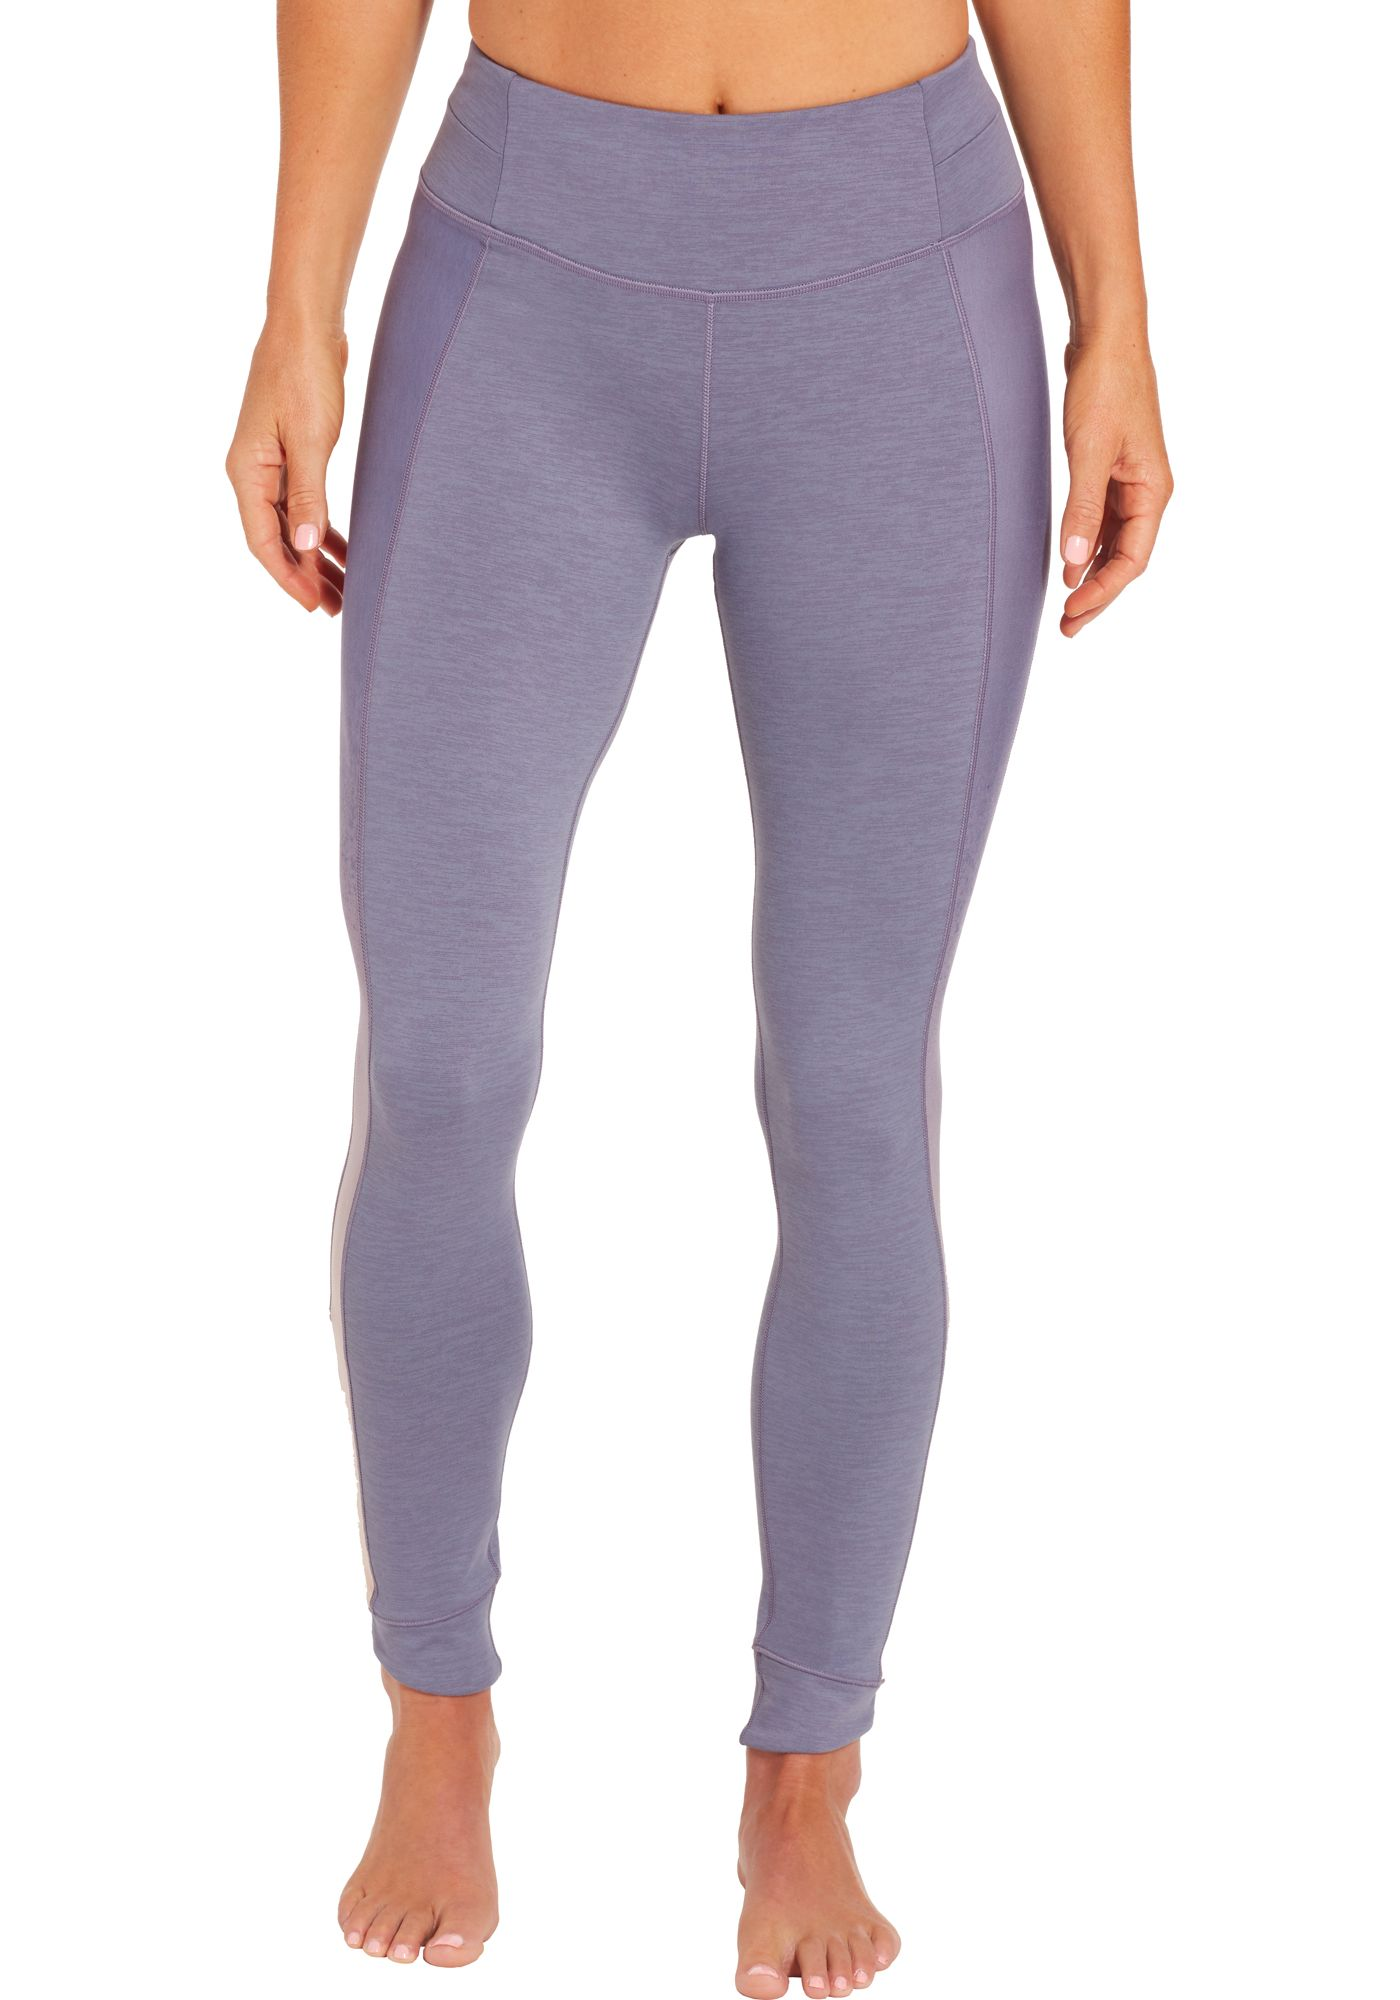 CALIA by Carrie Underwood Women's Warm Leggings